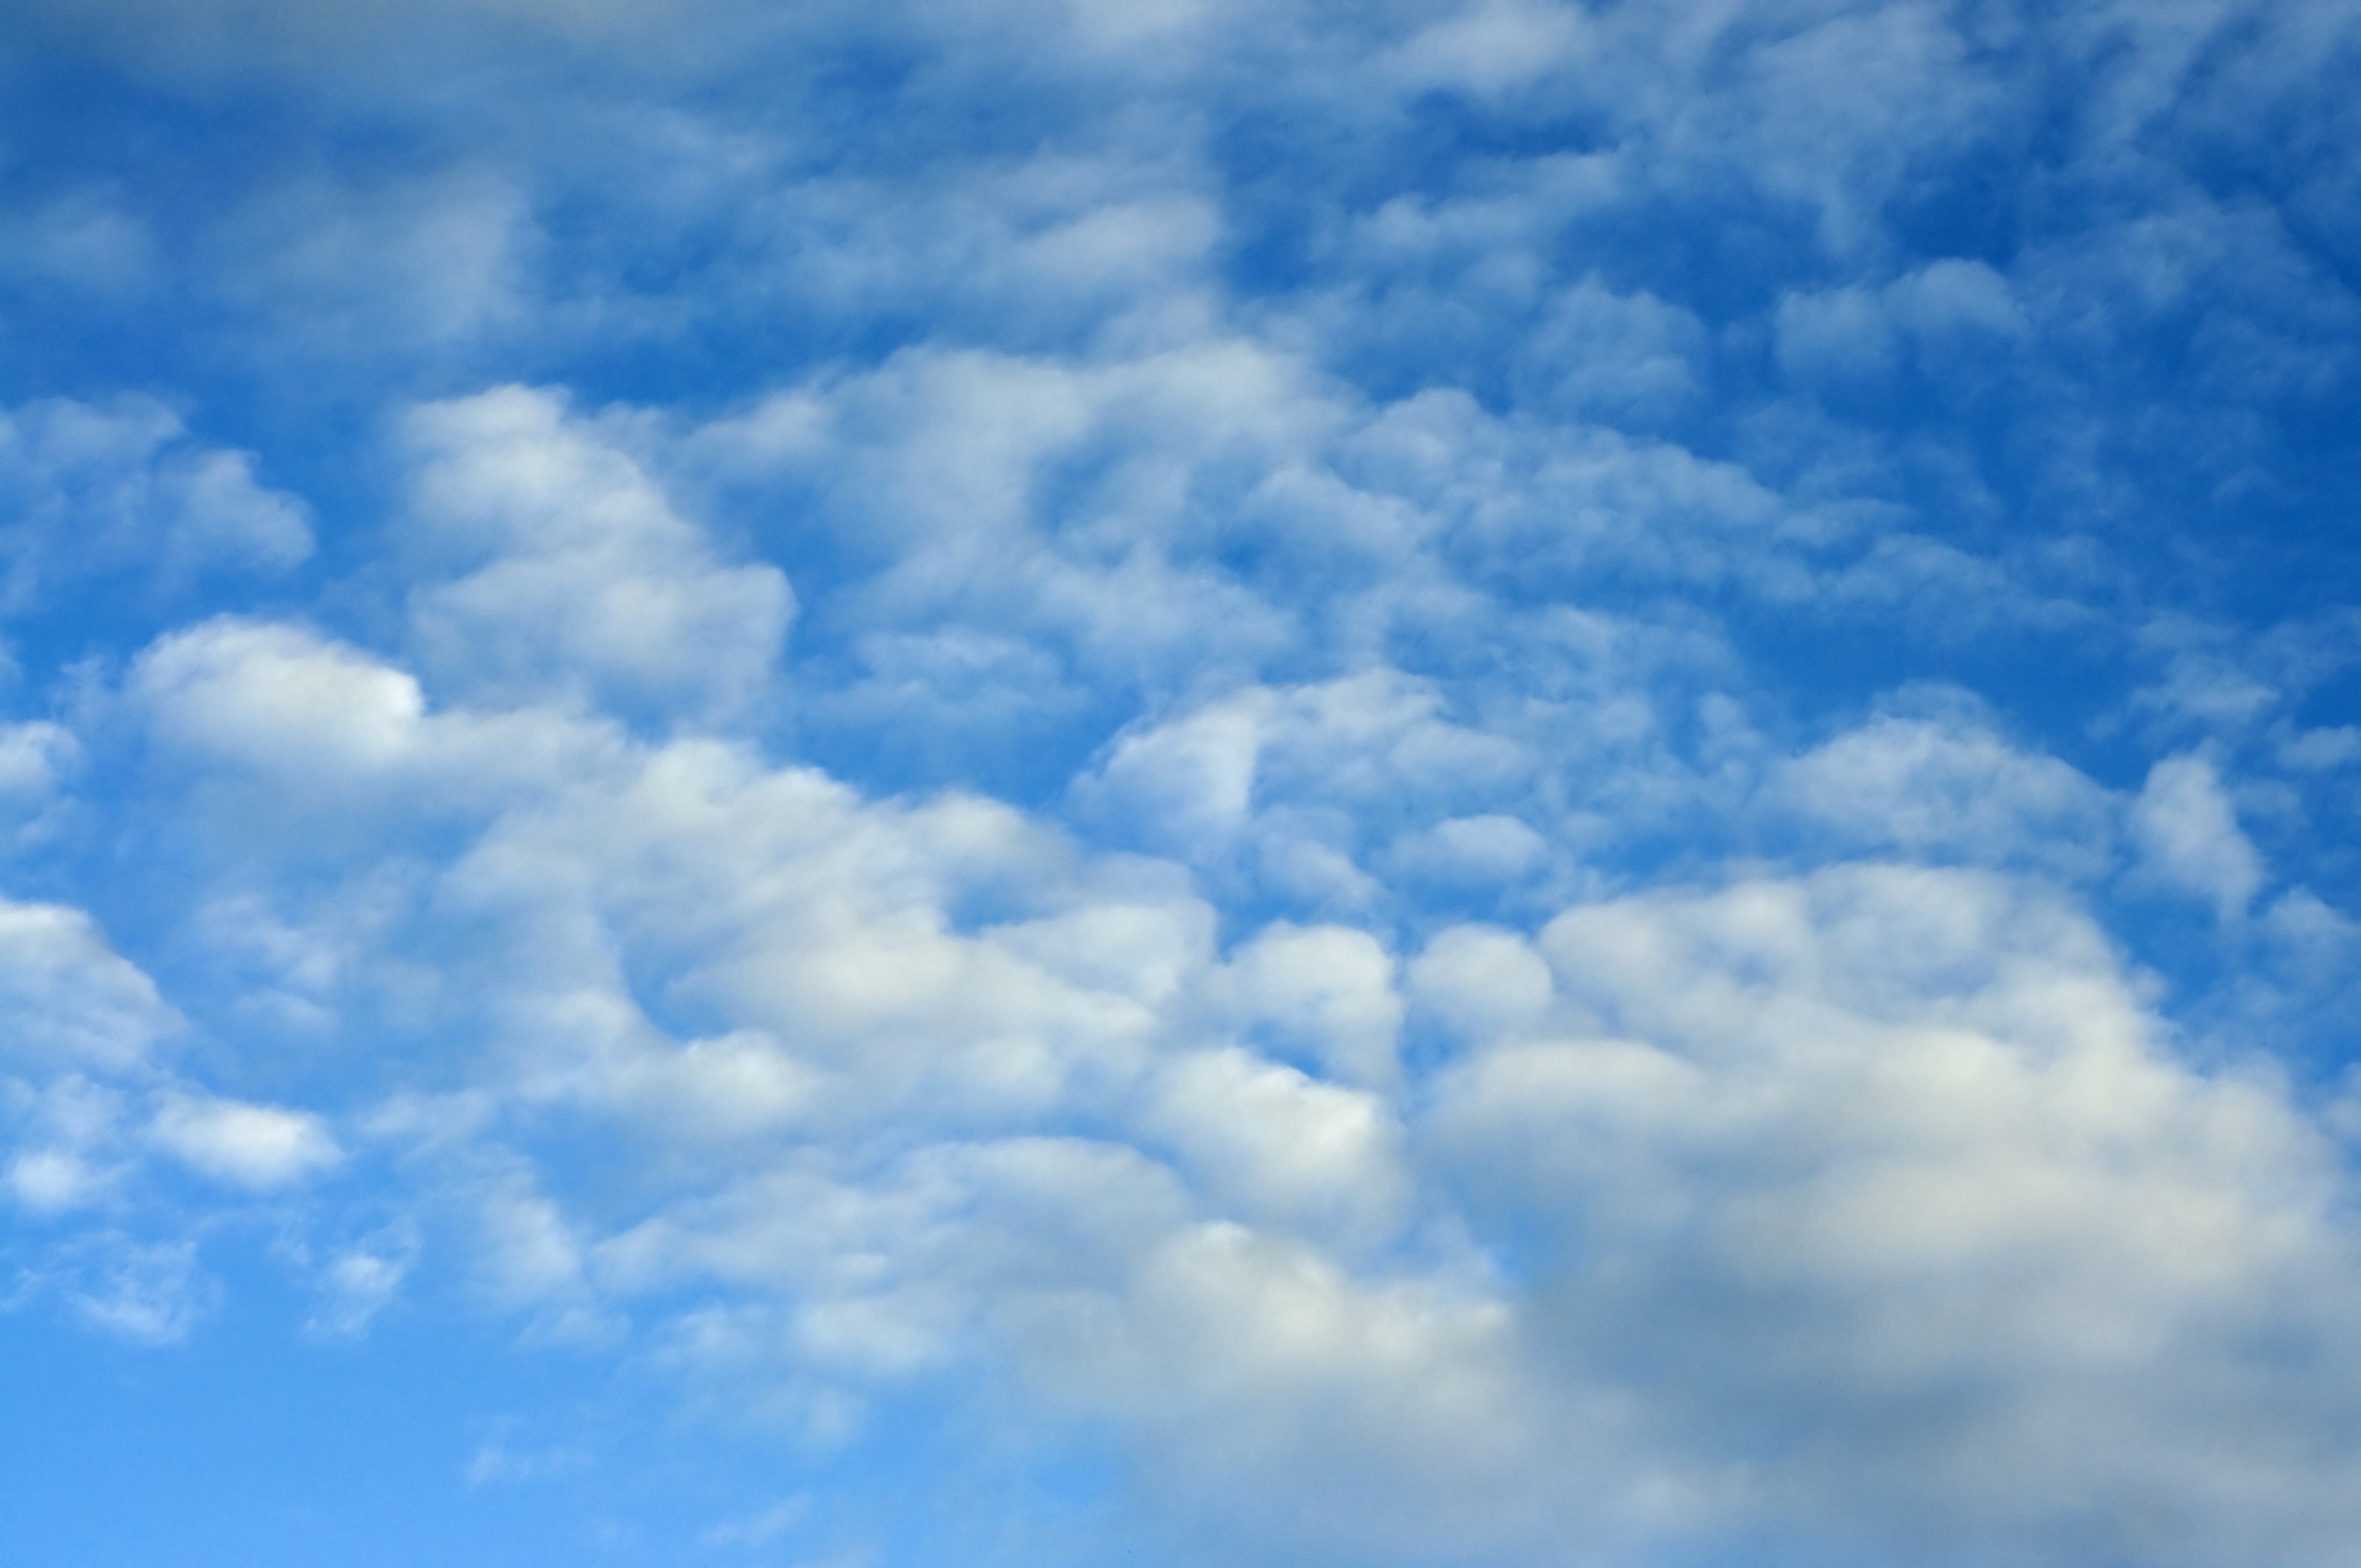 Cloud Formations by Jessica Tufts on Prezi